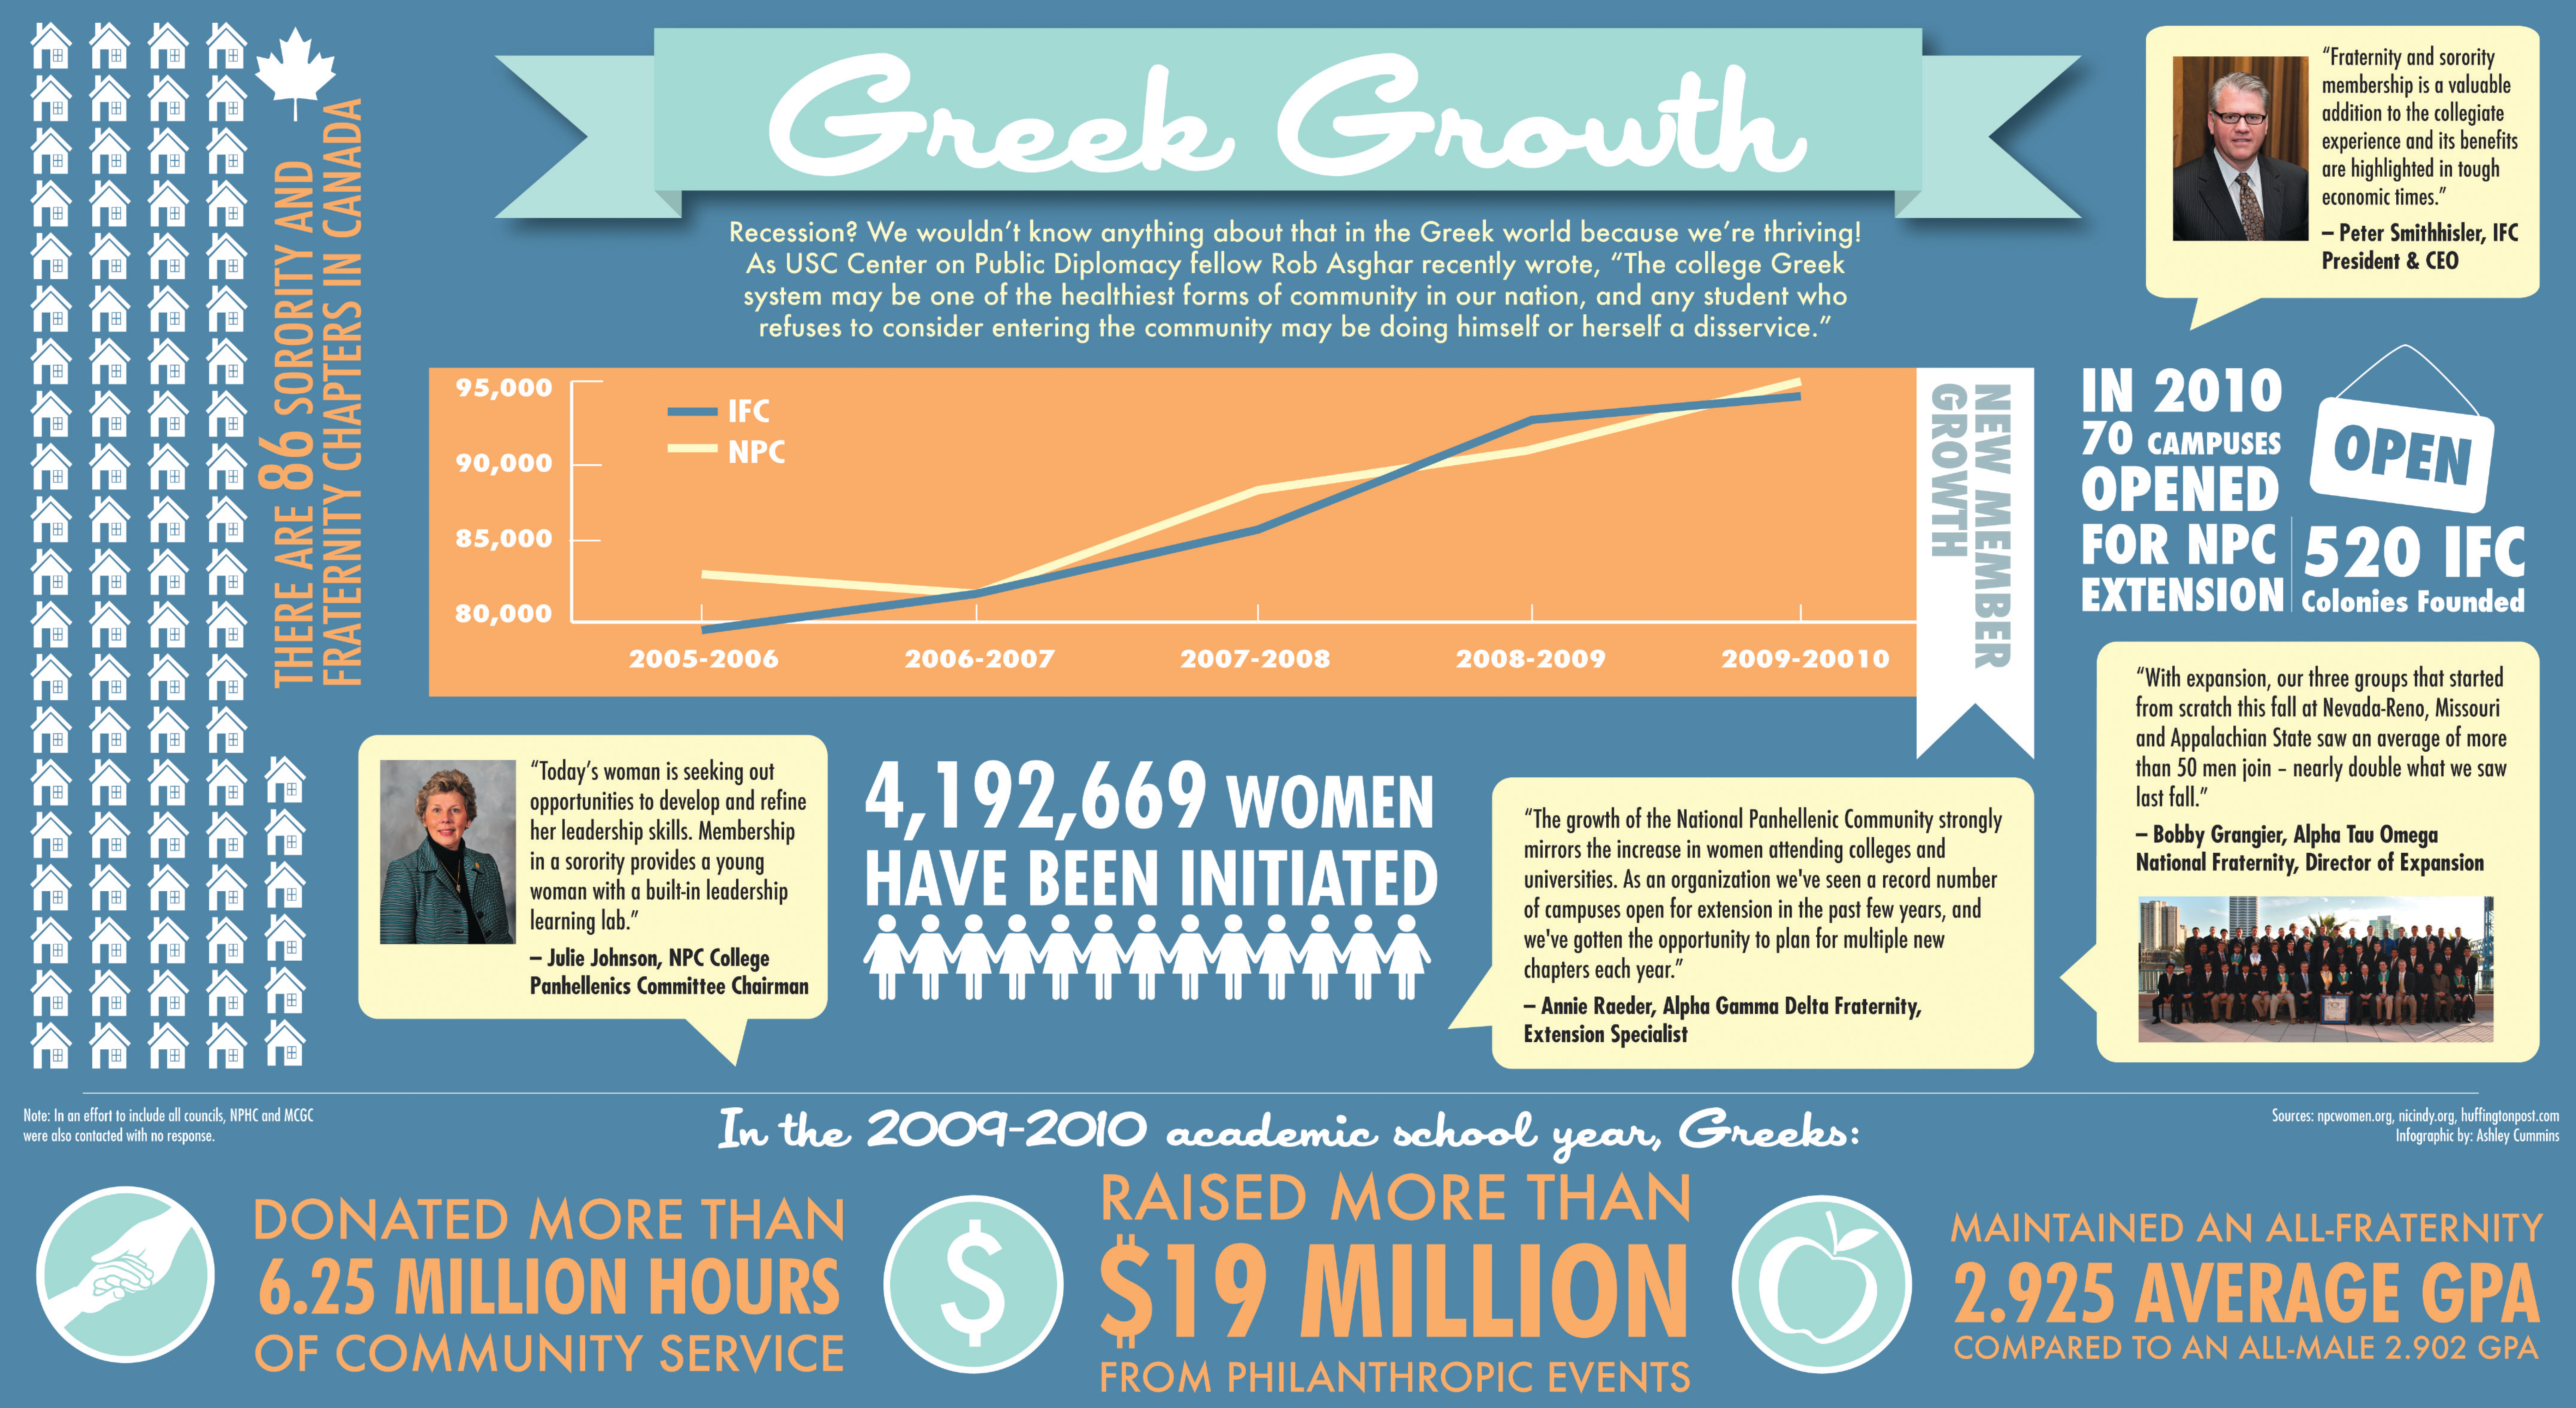 greek growth sorority fraternity greeklife odyssey greek growth sorority fraternity greeklife